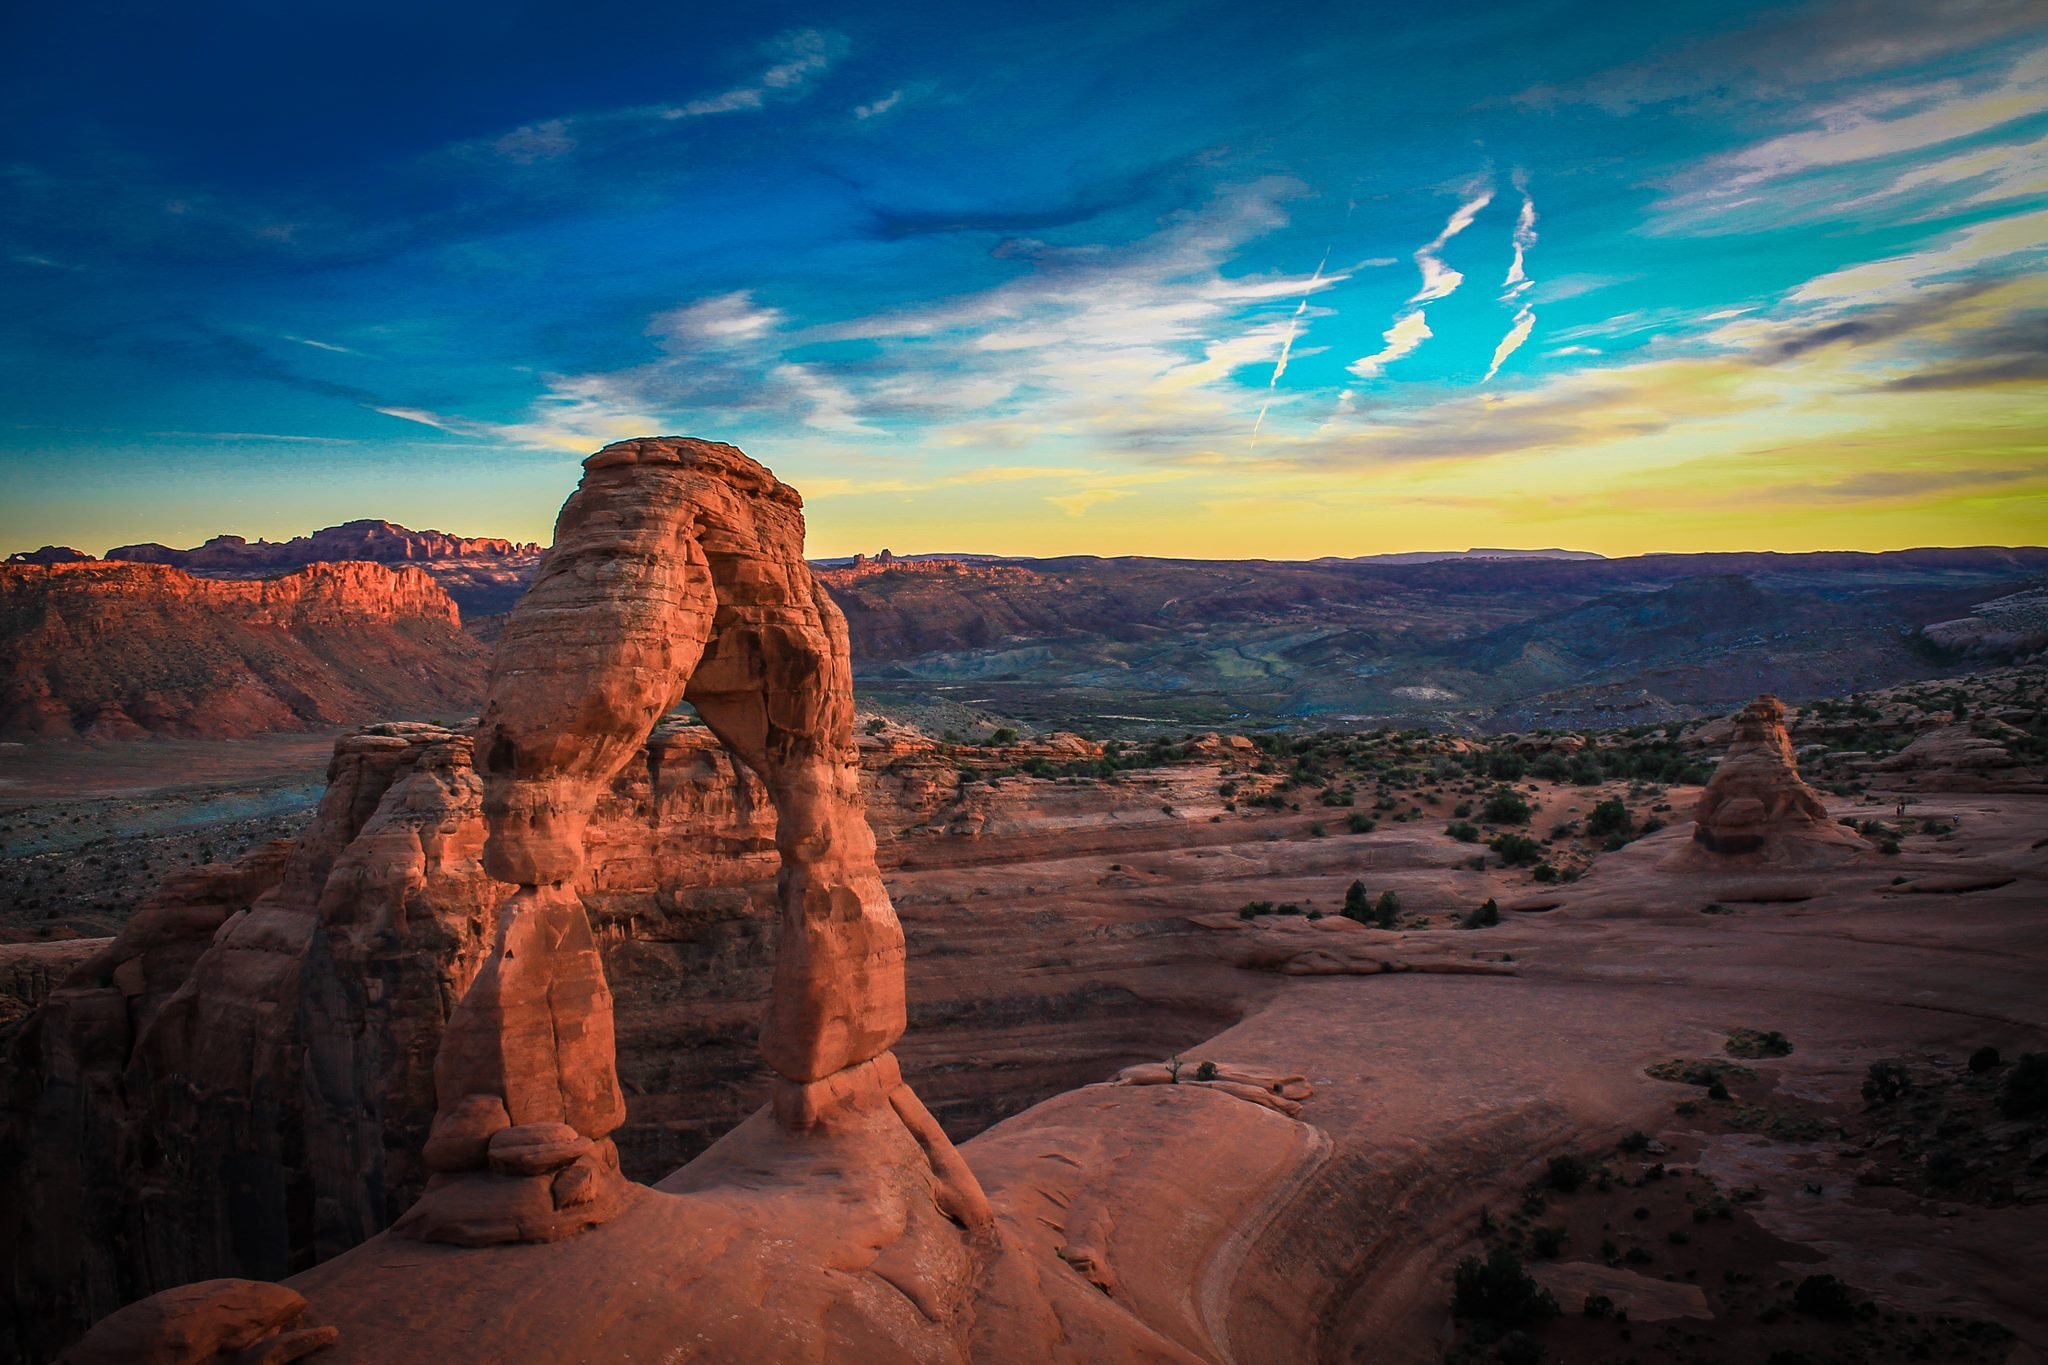 Natural canyon arch in a desert with a colorful sky in the background